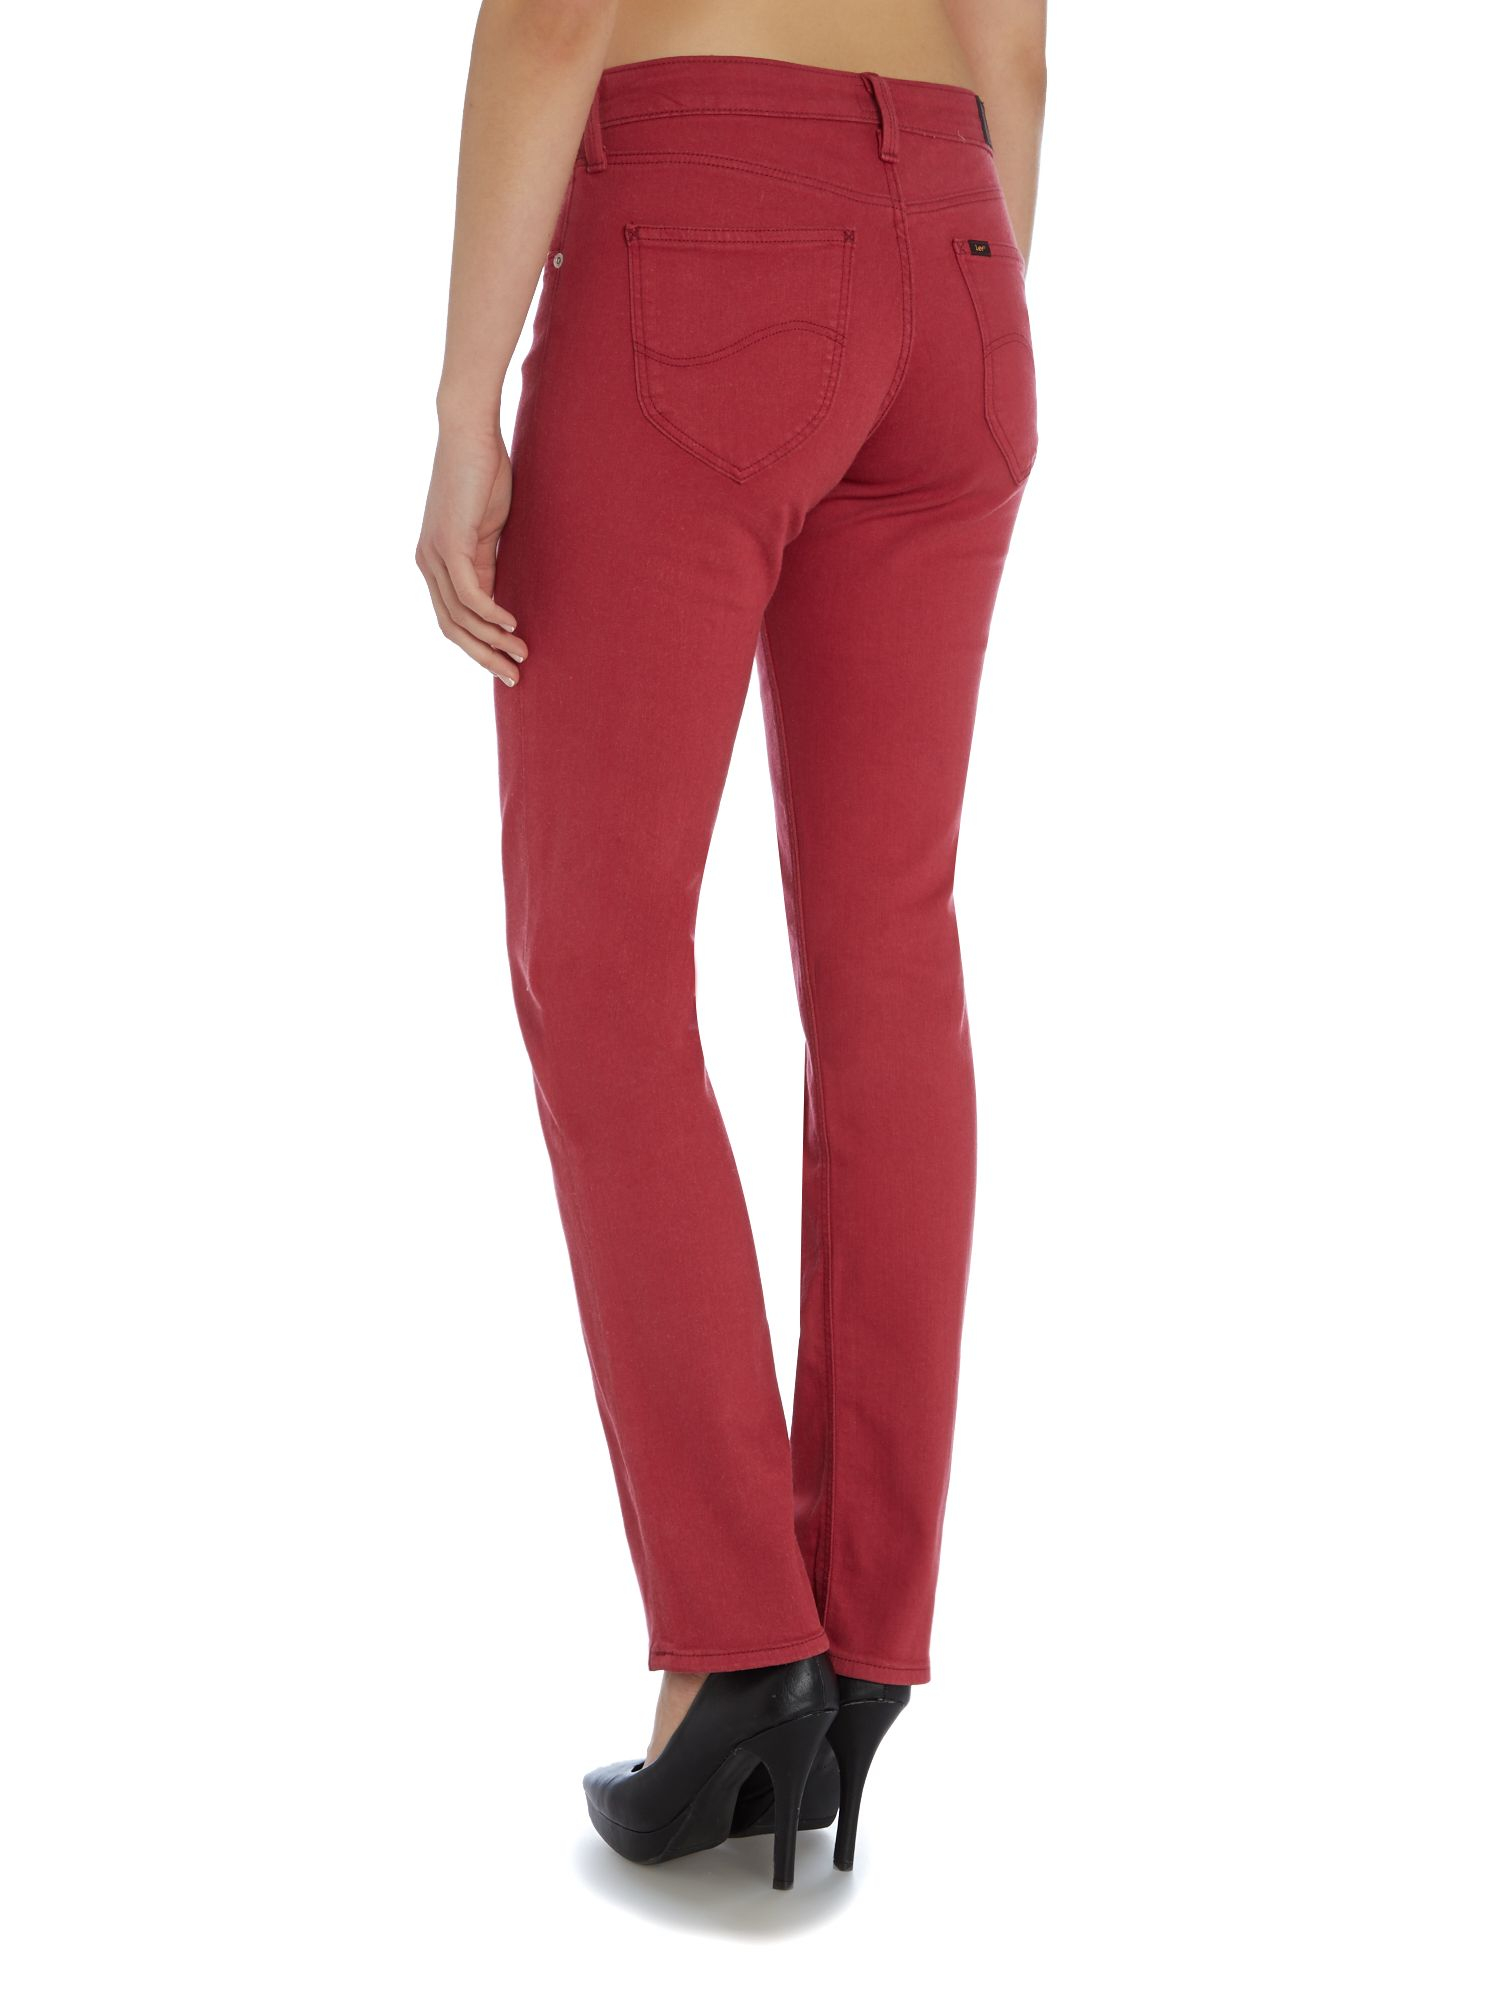 Lee Jeans Marion Straight Fit Jean In Framboise In Pink Lyst